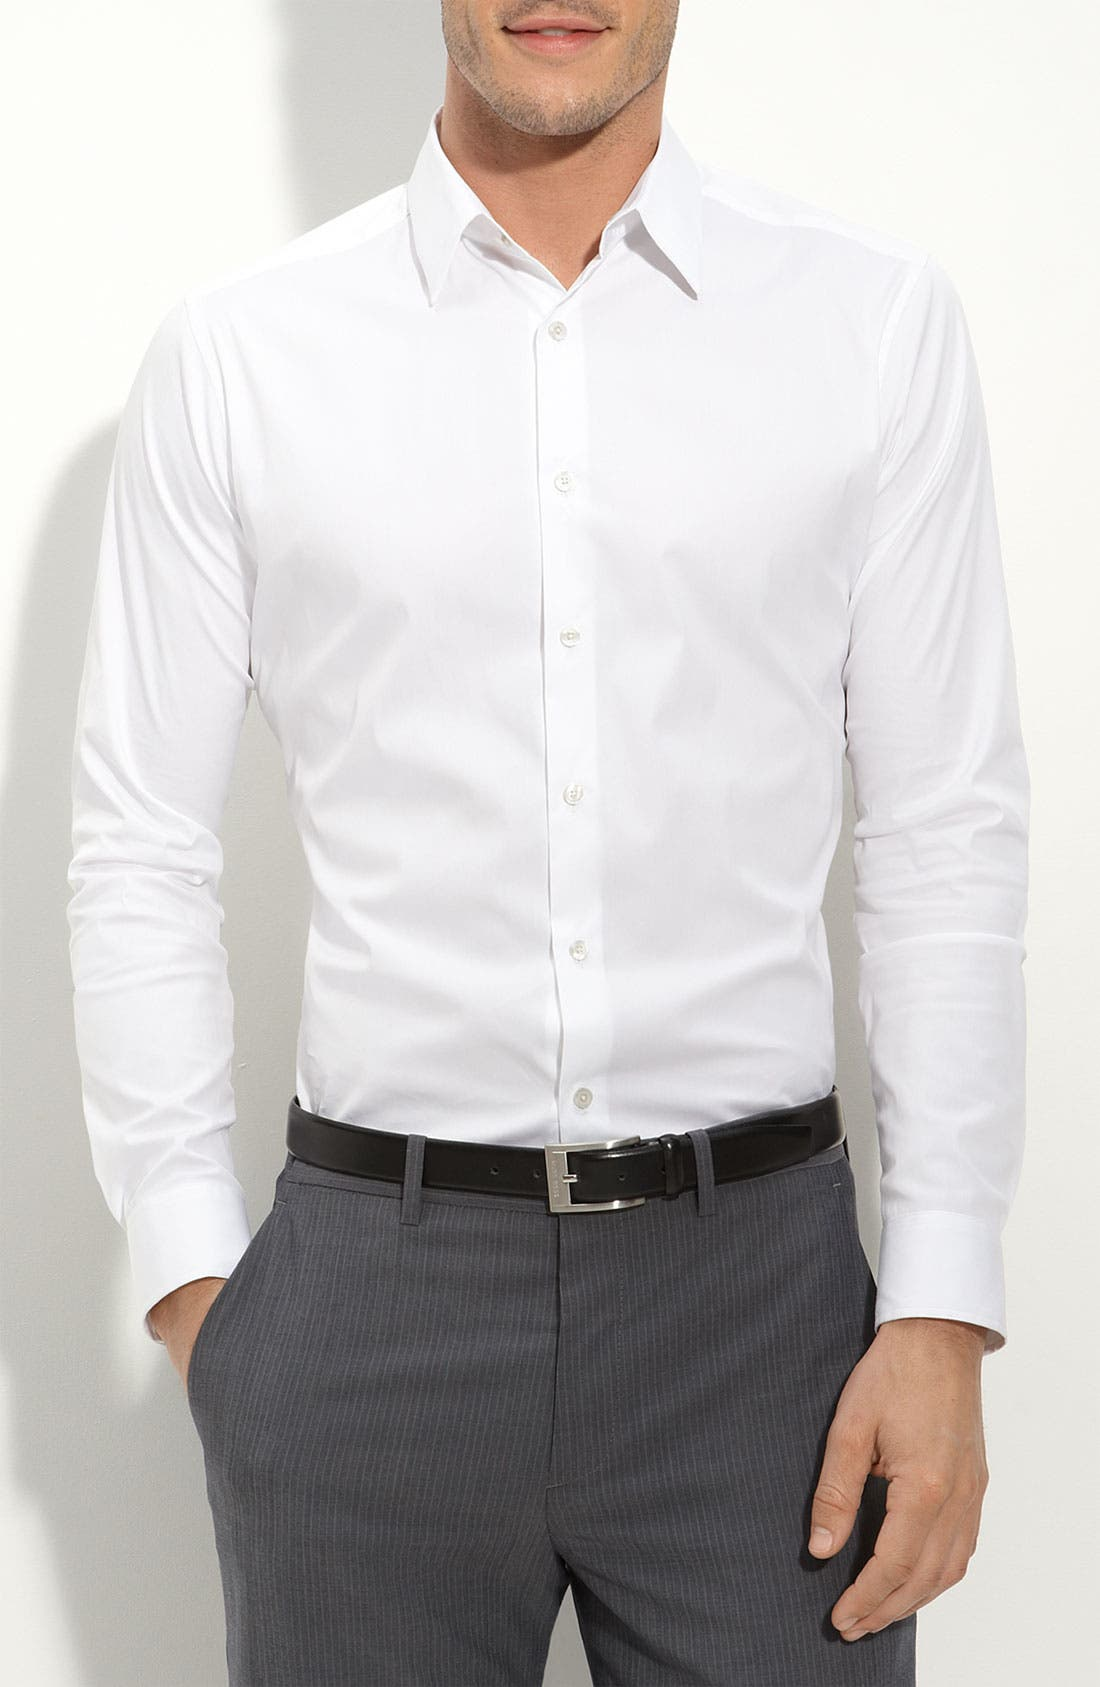 Alternate Image 1 Selected - Theory Trim Fit Solid Sport Shirt